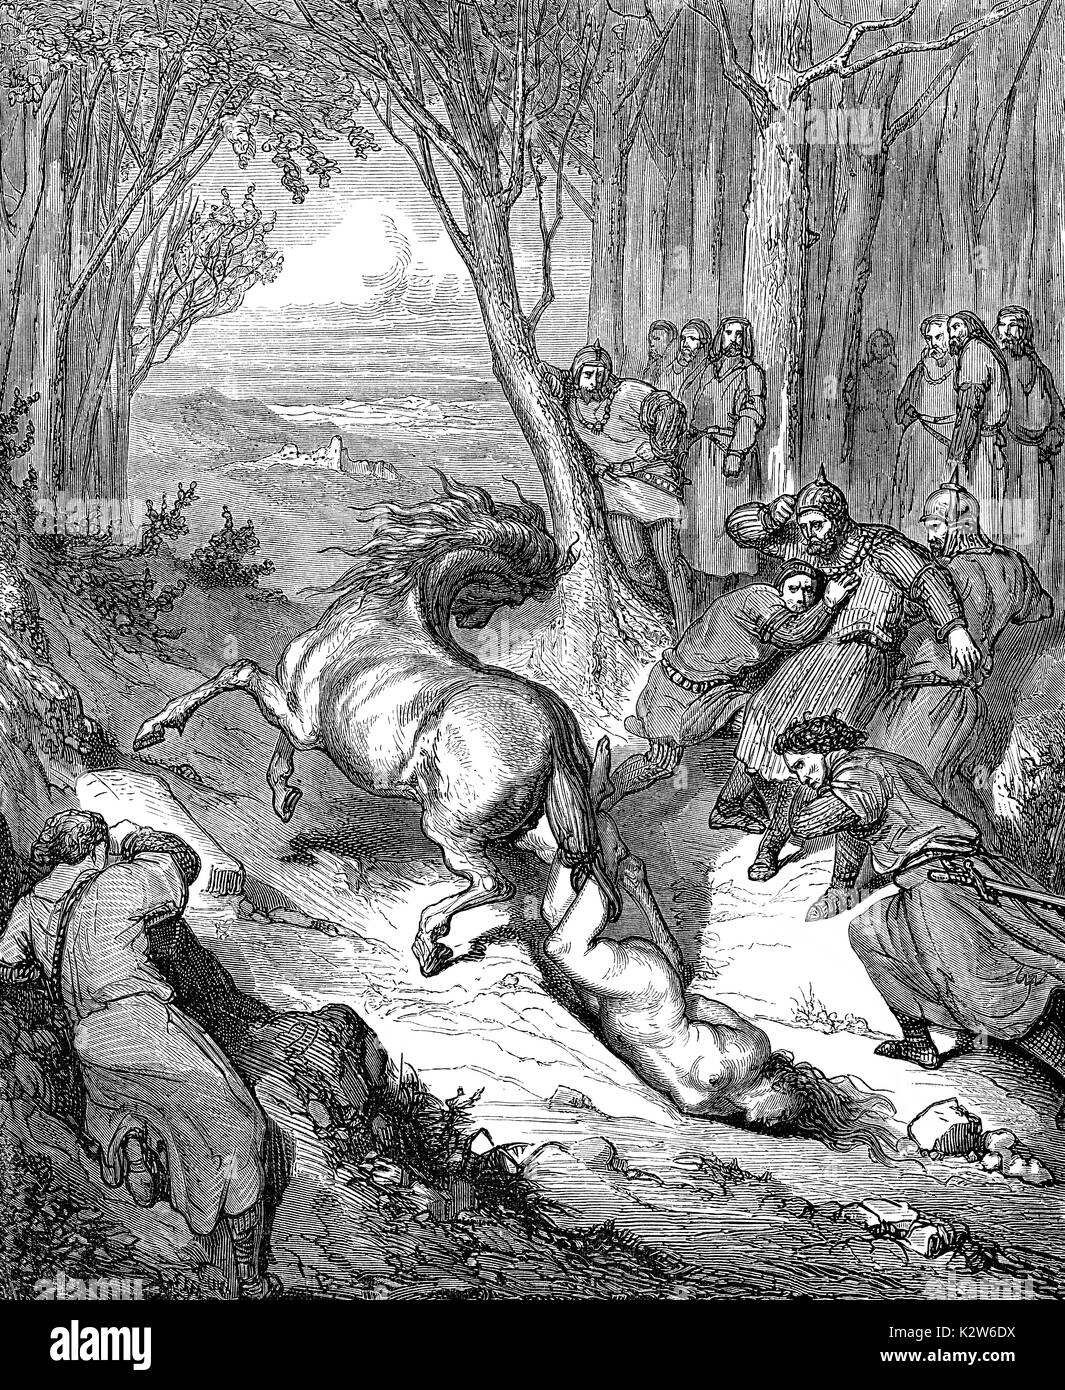 The murder of Brunhilda, c. 543–613, a Queen of Austrasia - Stock Image